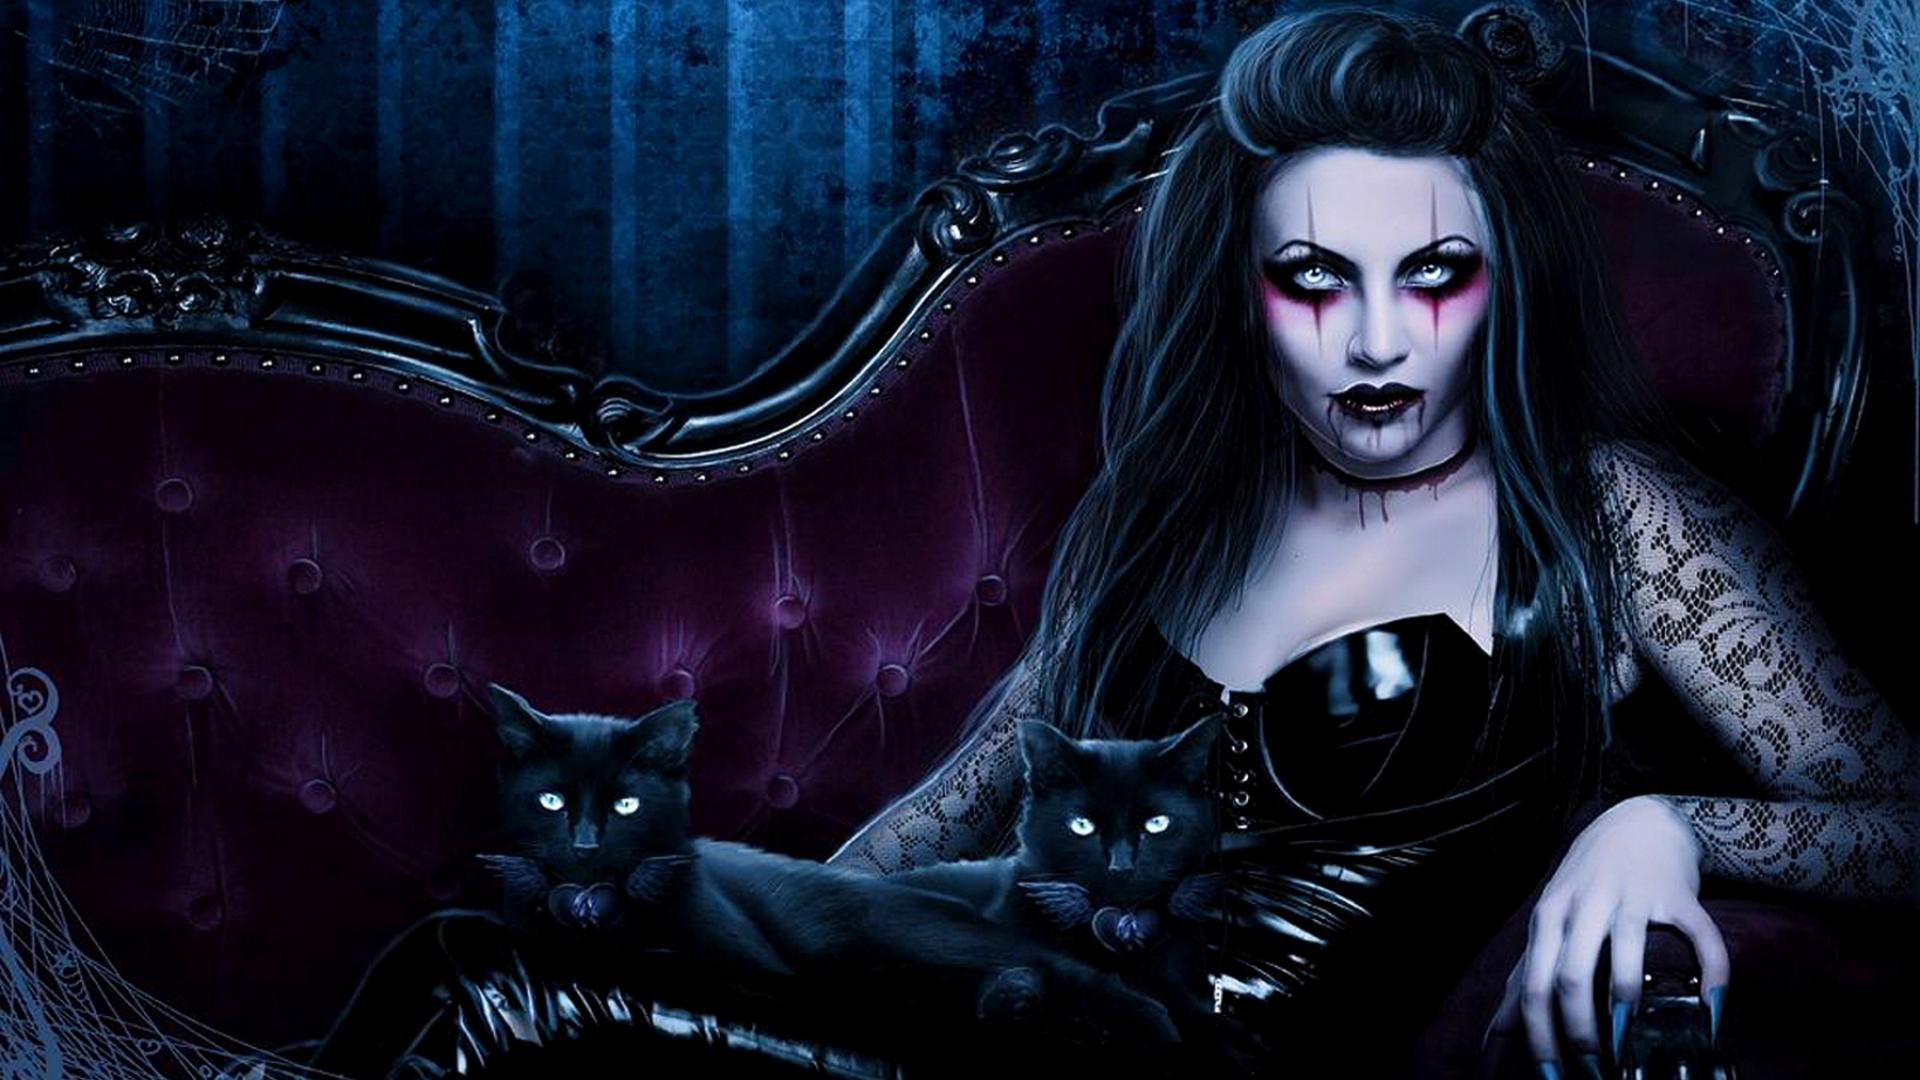 Dark Gothic Wallpaper 1920x1080 Dark Gothic 1920x1080